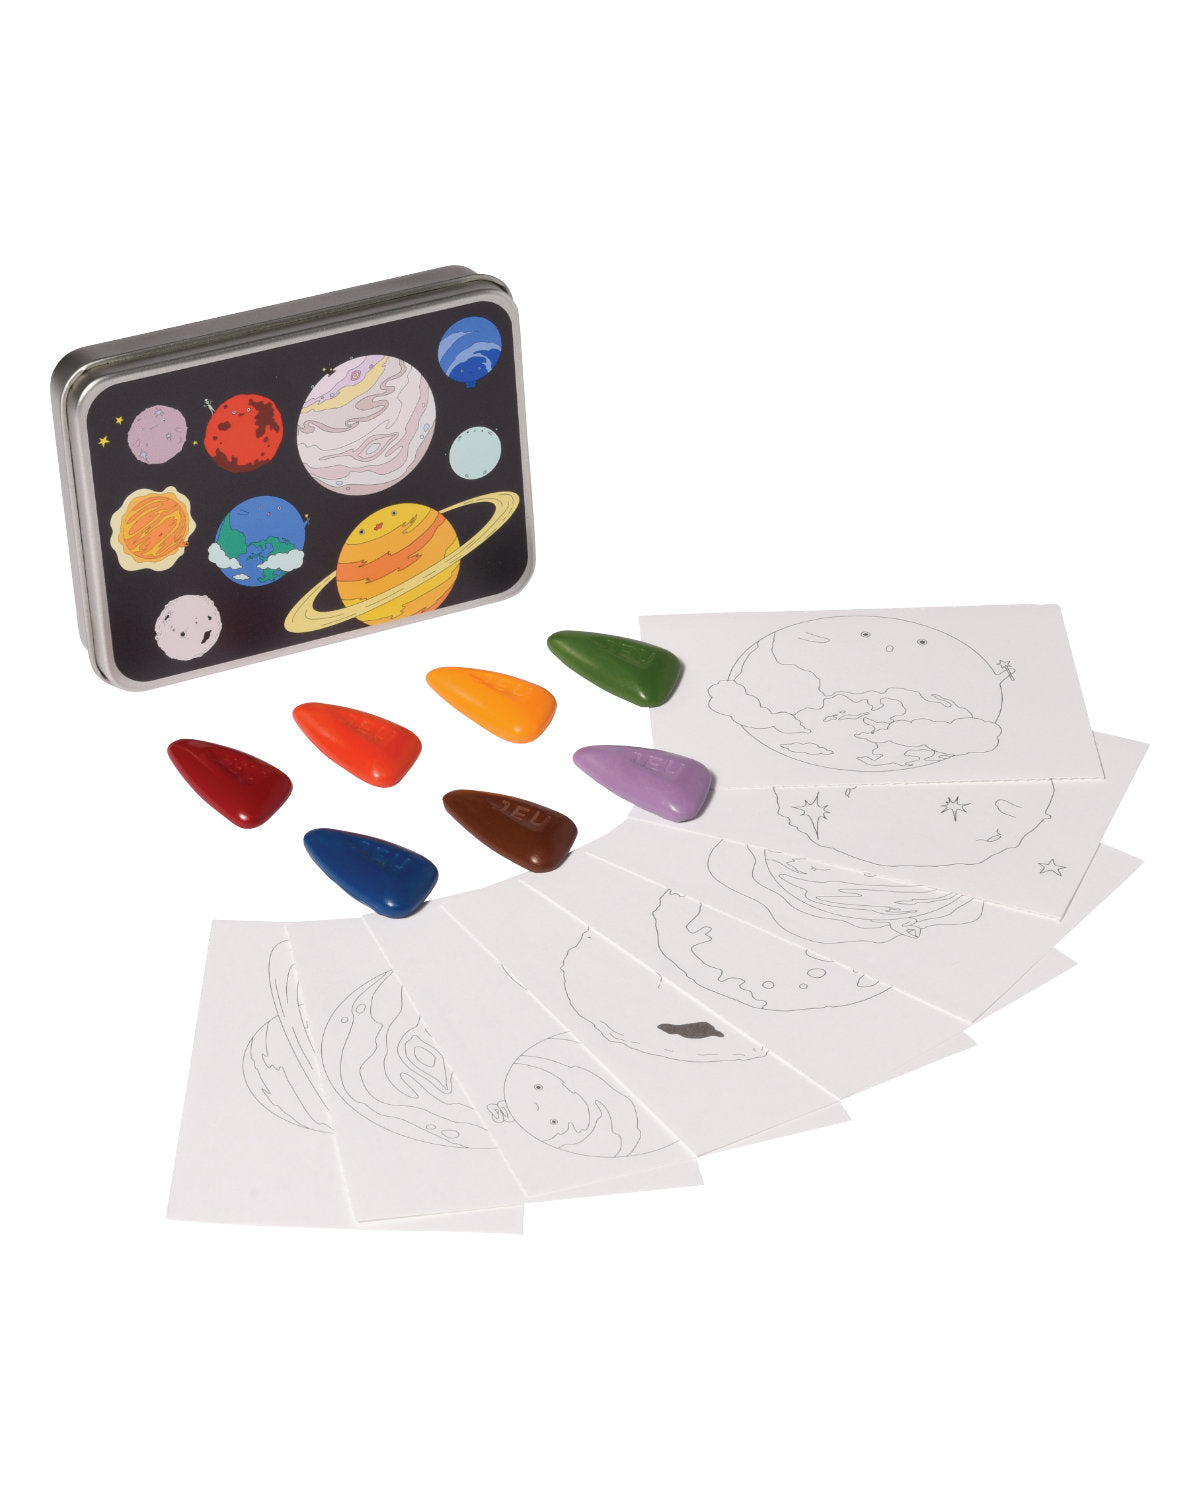 Coloring Kit Set SAFARI + OCEAN + PLANETS + UNICORN Small